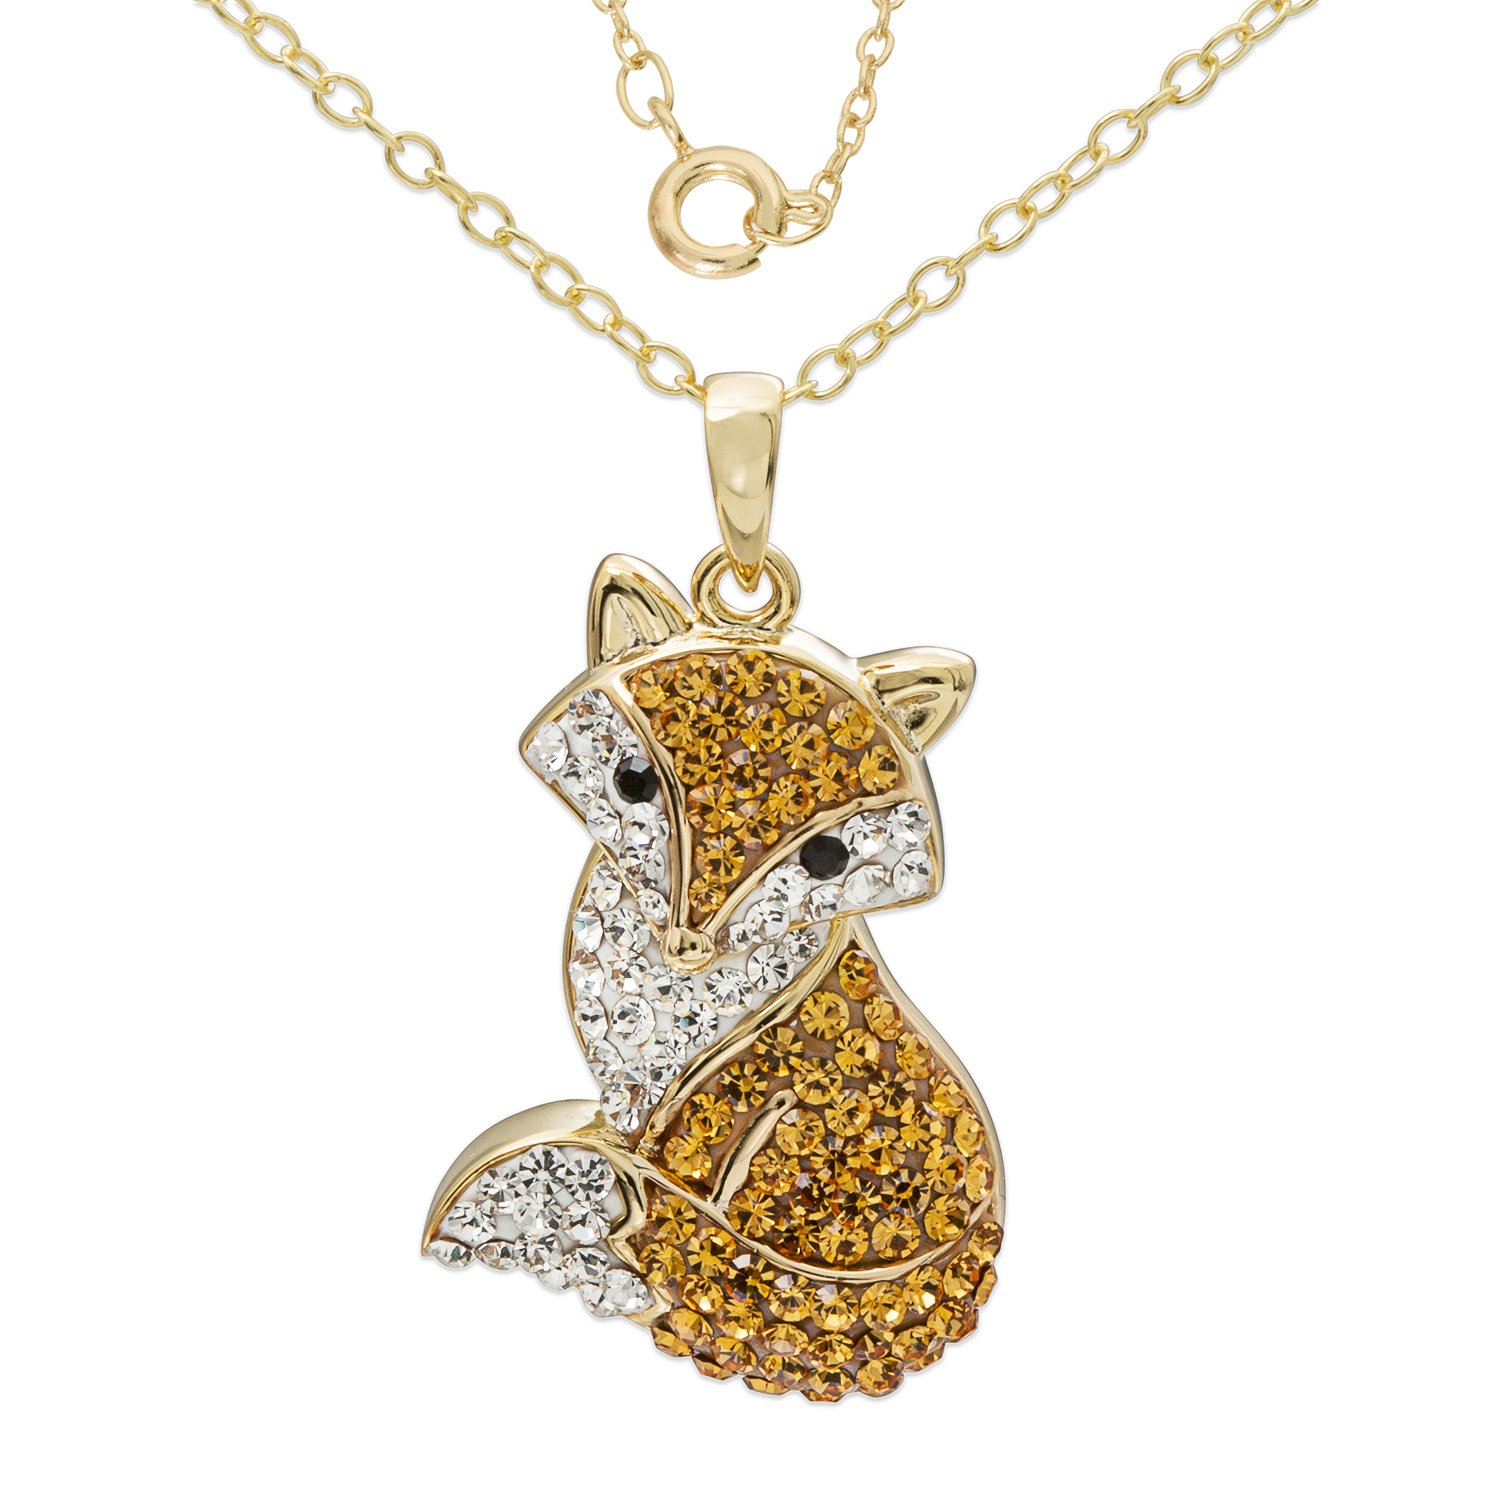 Crystalogy Women s Sterling Silver Swarovski Crystal Fox Animal Pendant Necklace, 18 Chain